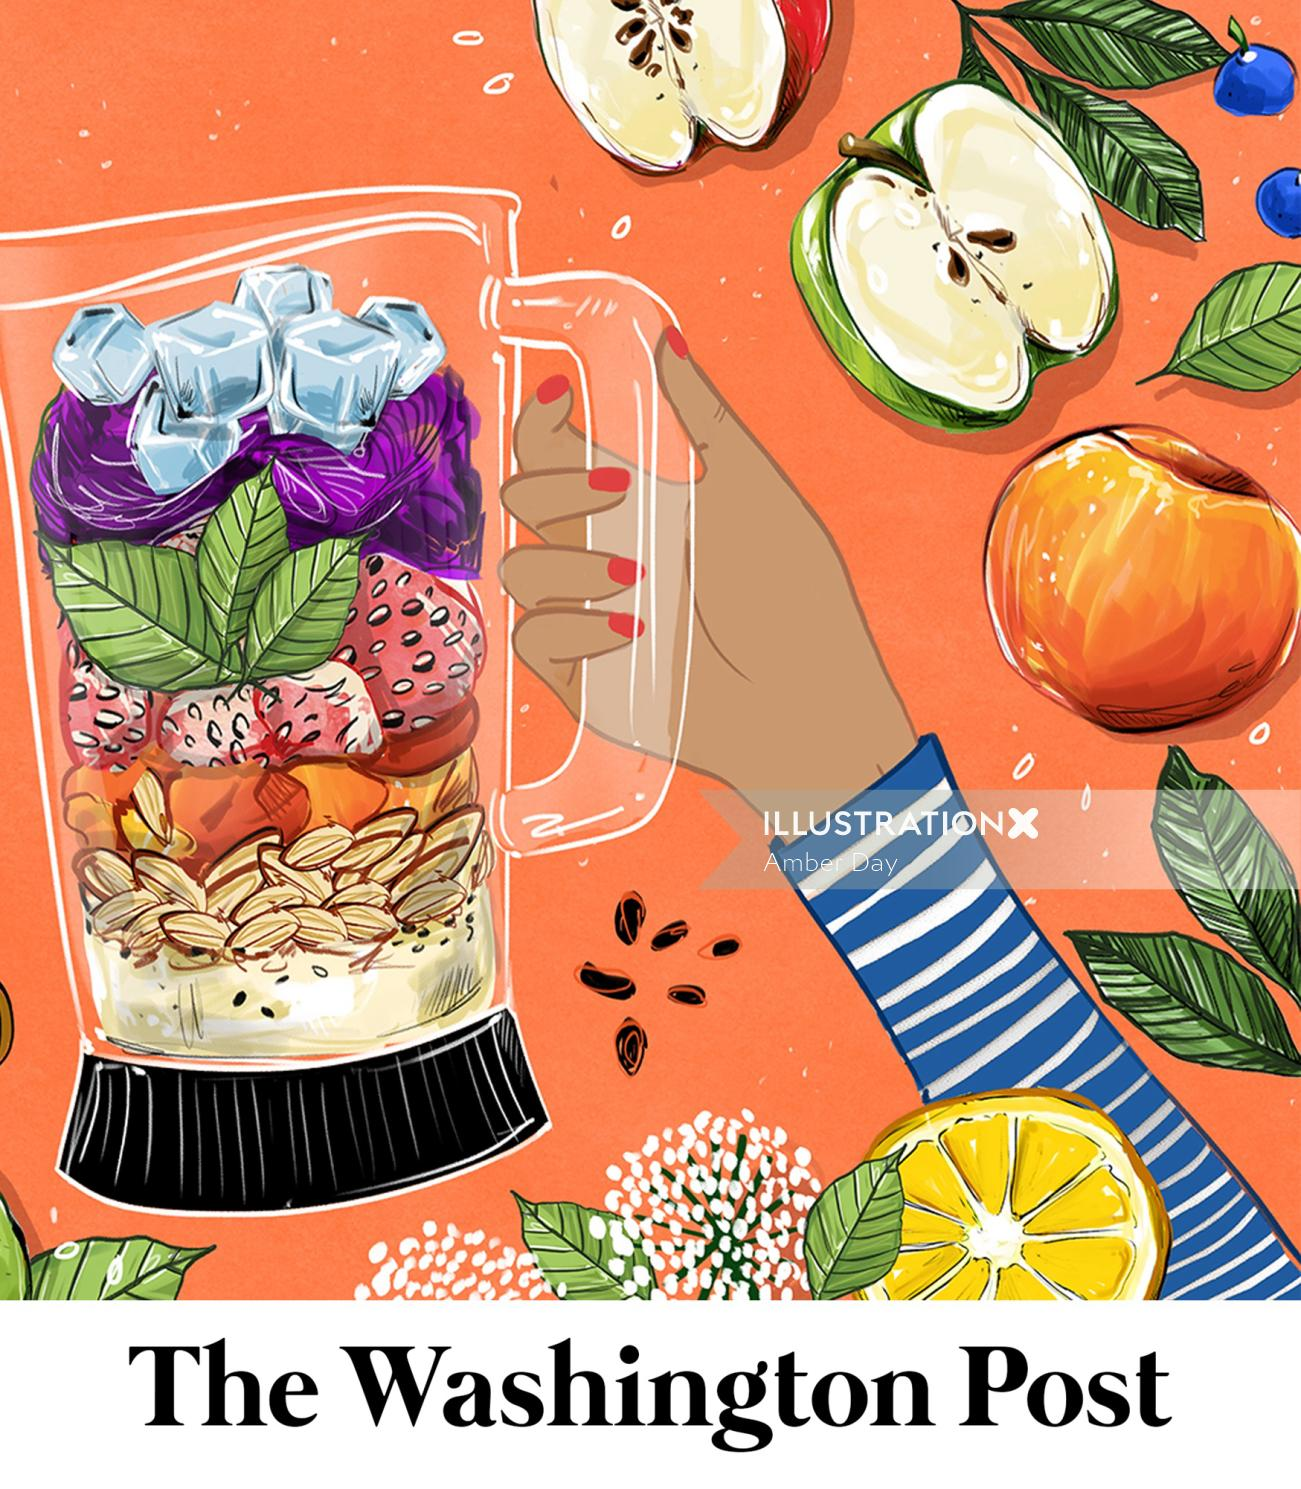 fruit, food, culinary, smoothie, healthy, editorial